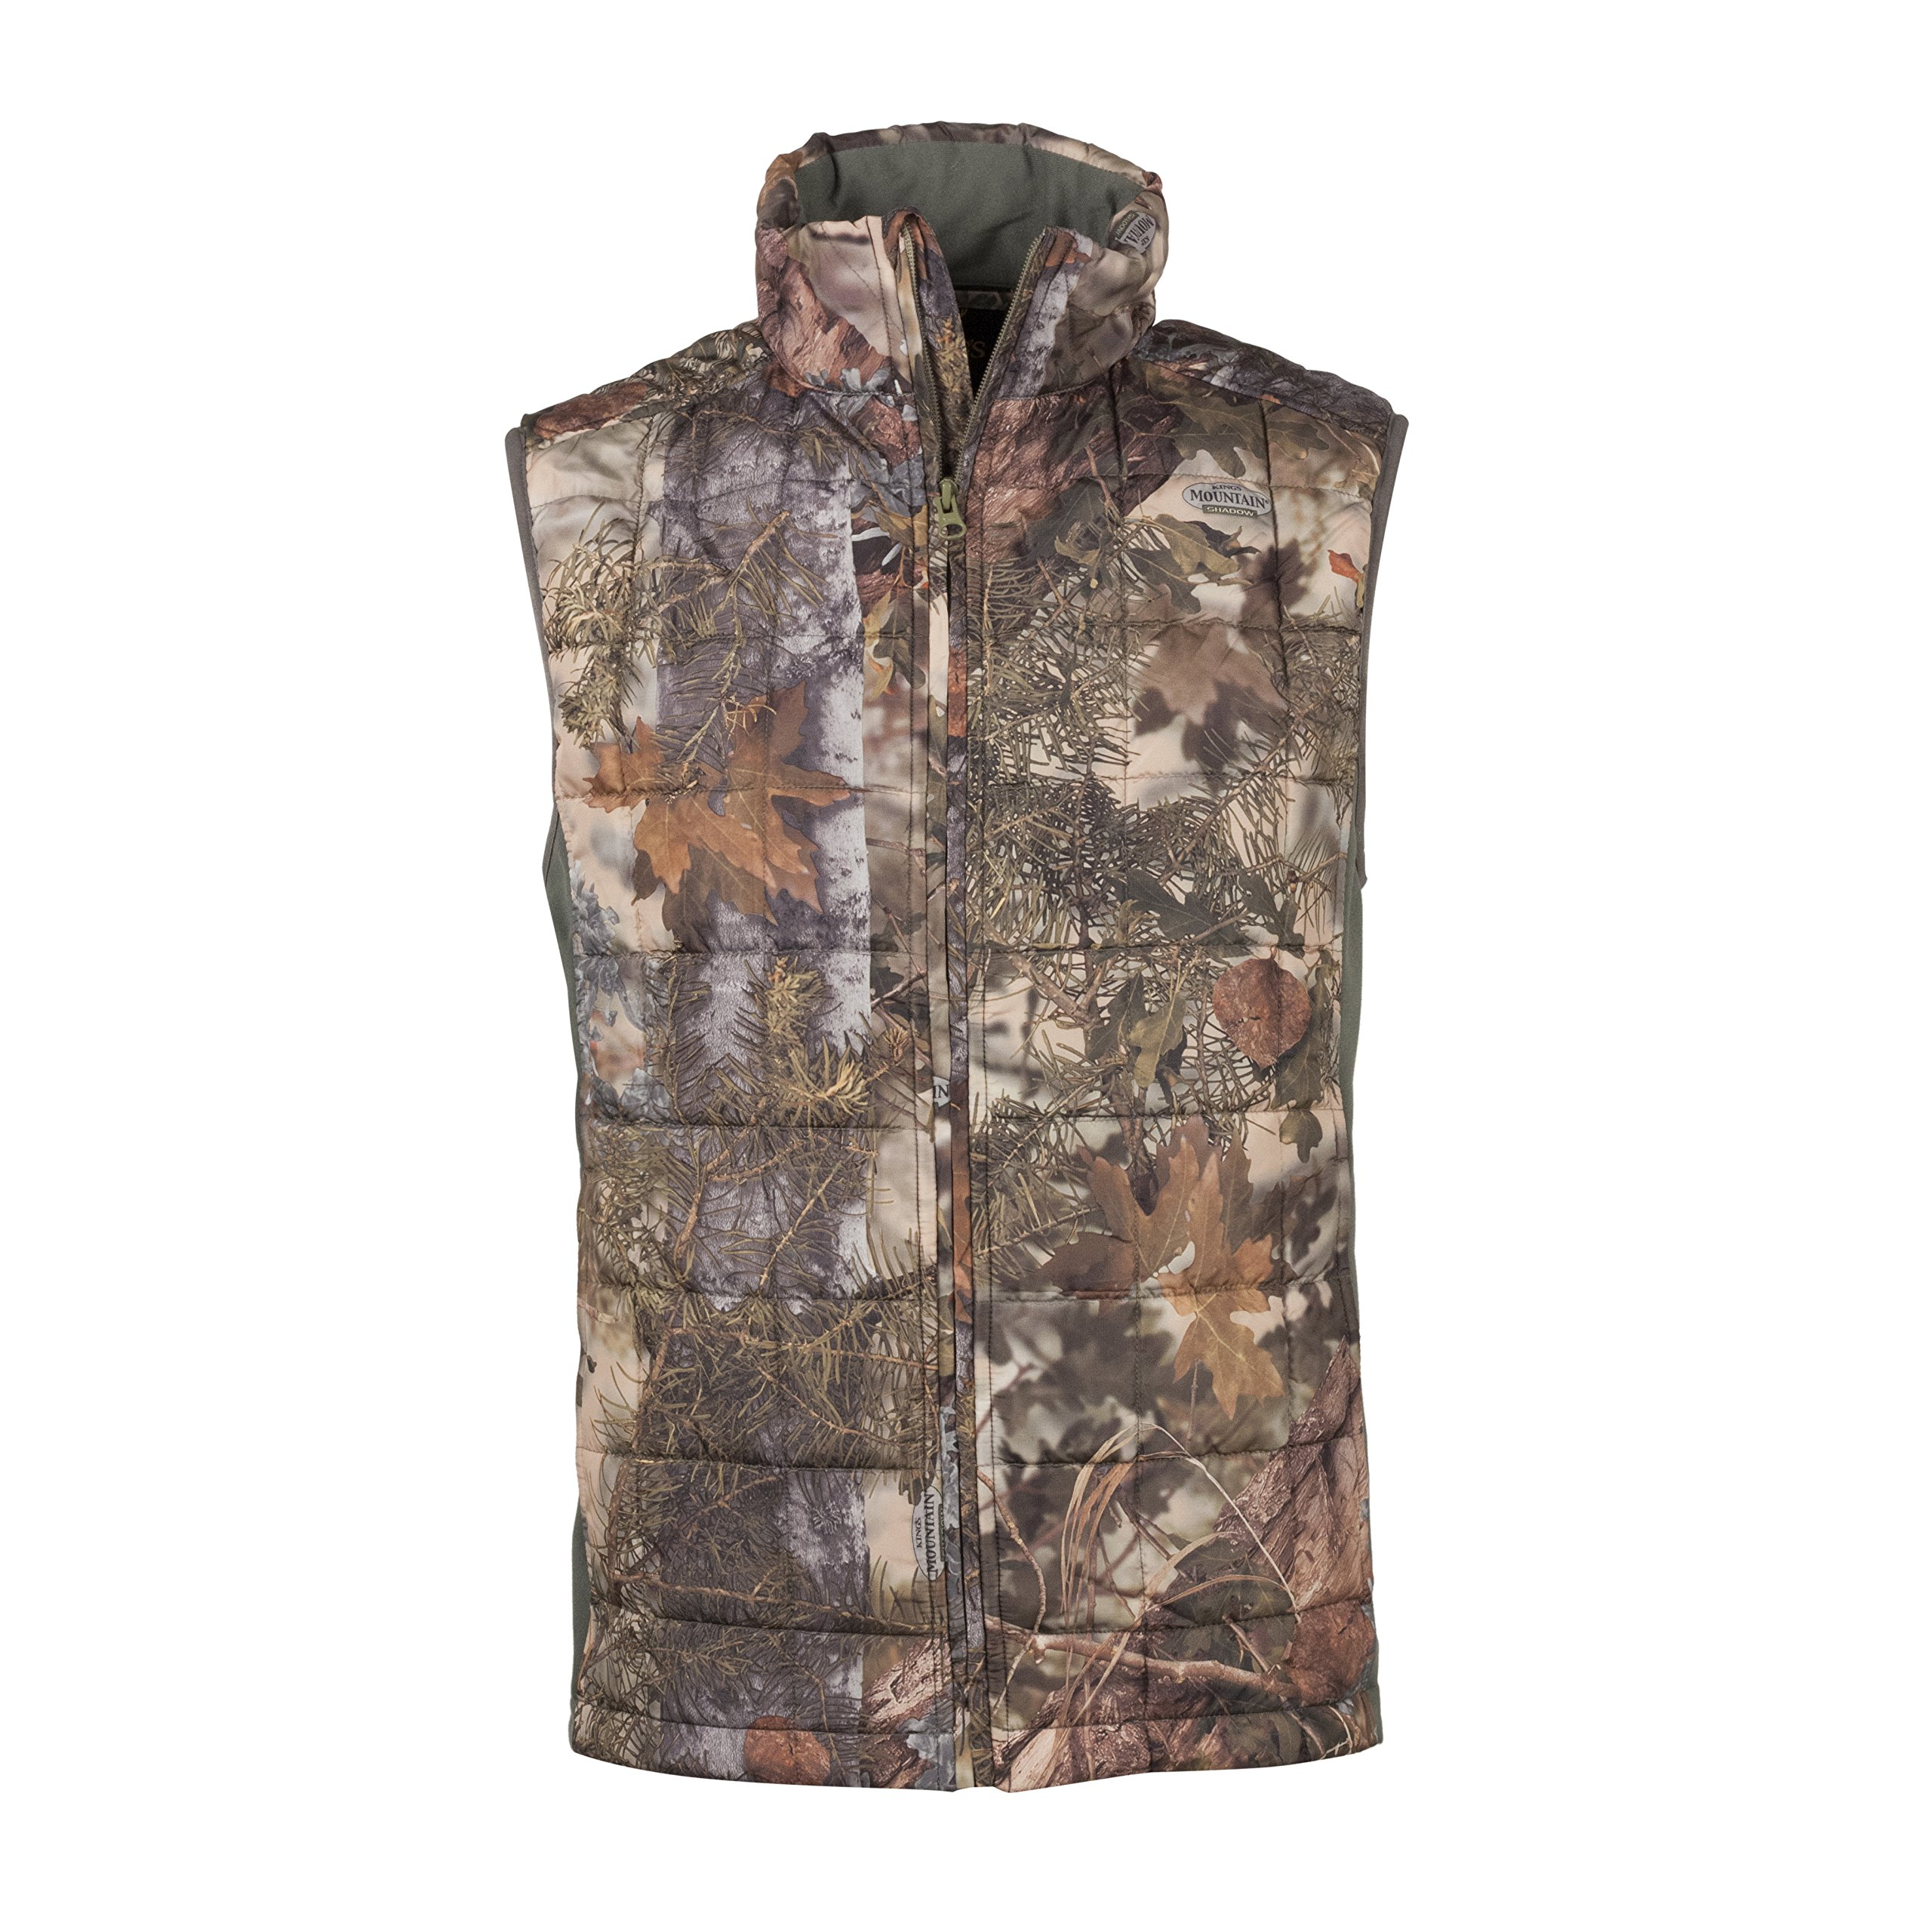 Kings Xkg Transition Vest Mountain Shadow, Camo, Medium by King's Camo